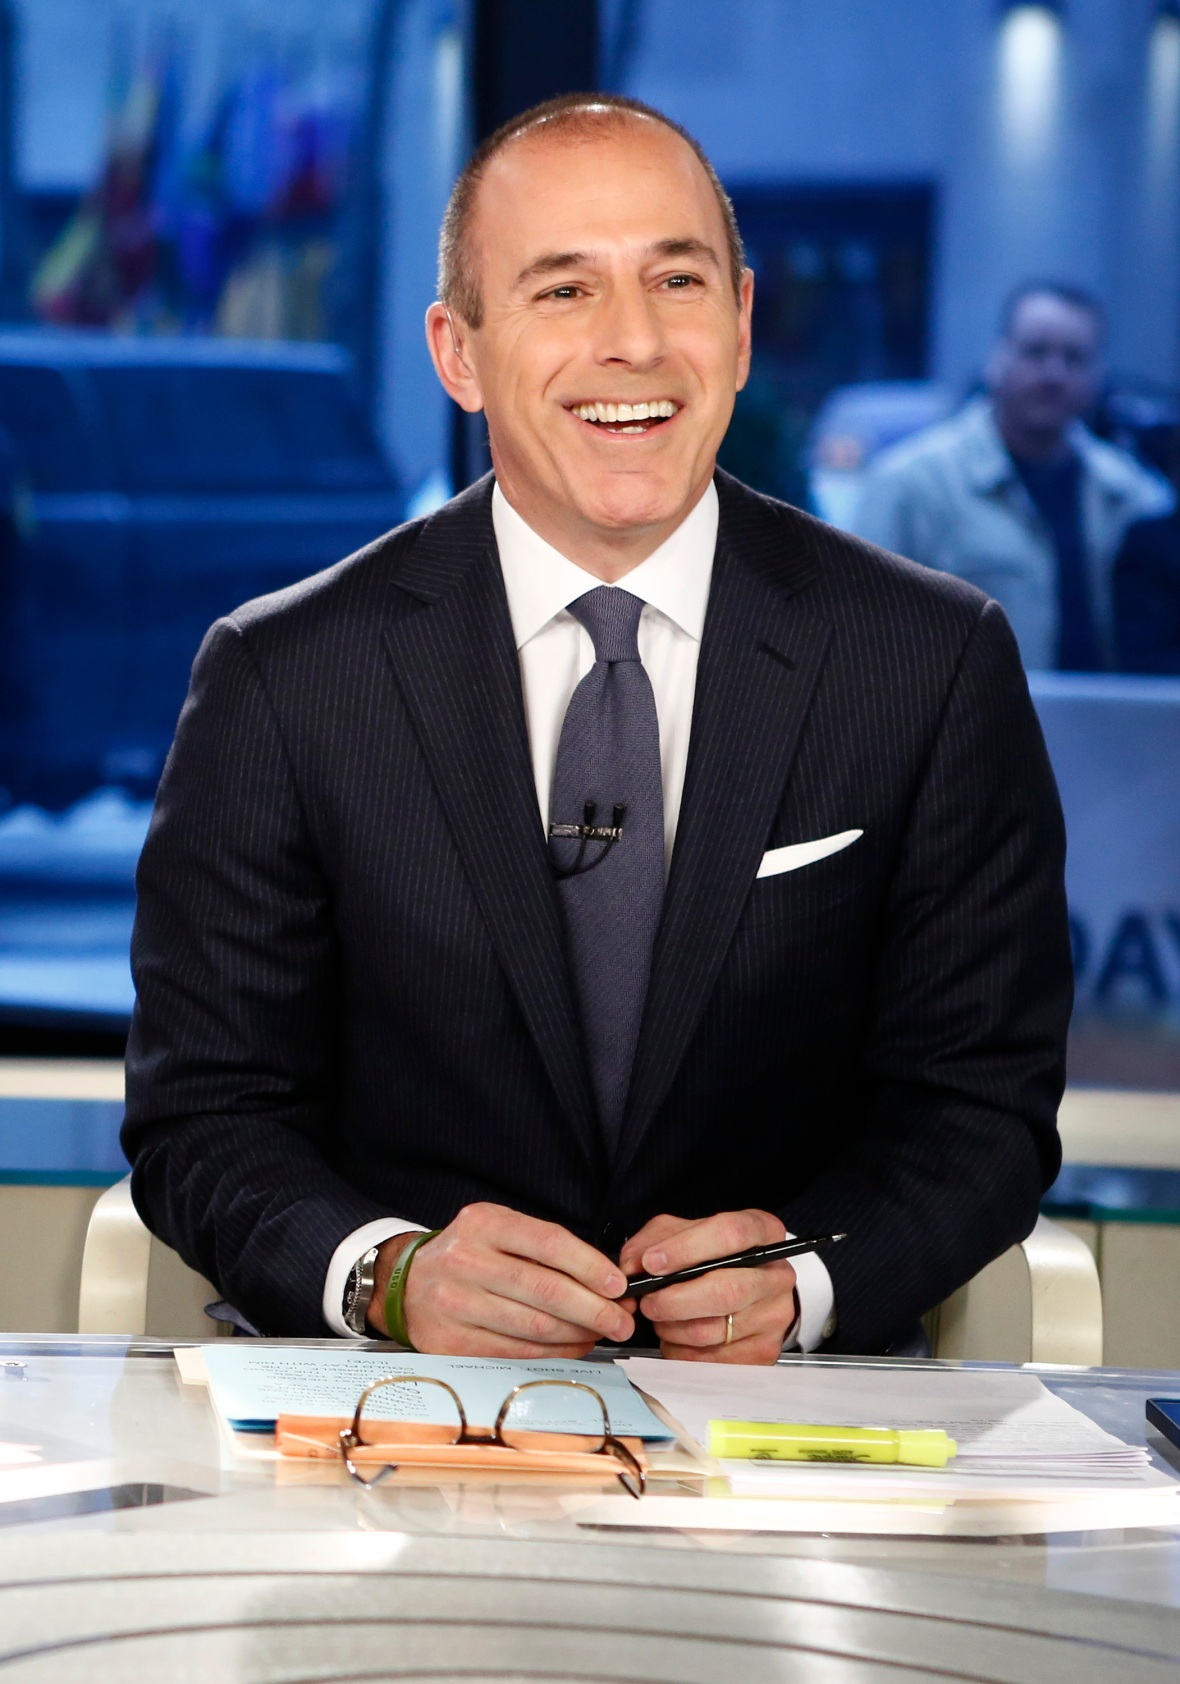 matt lauer today show getty images